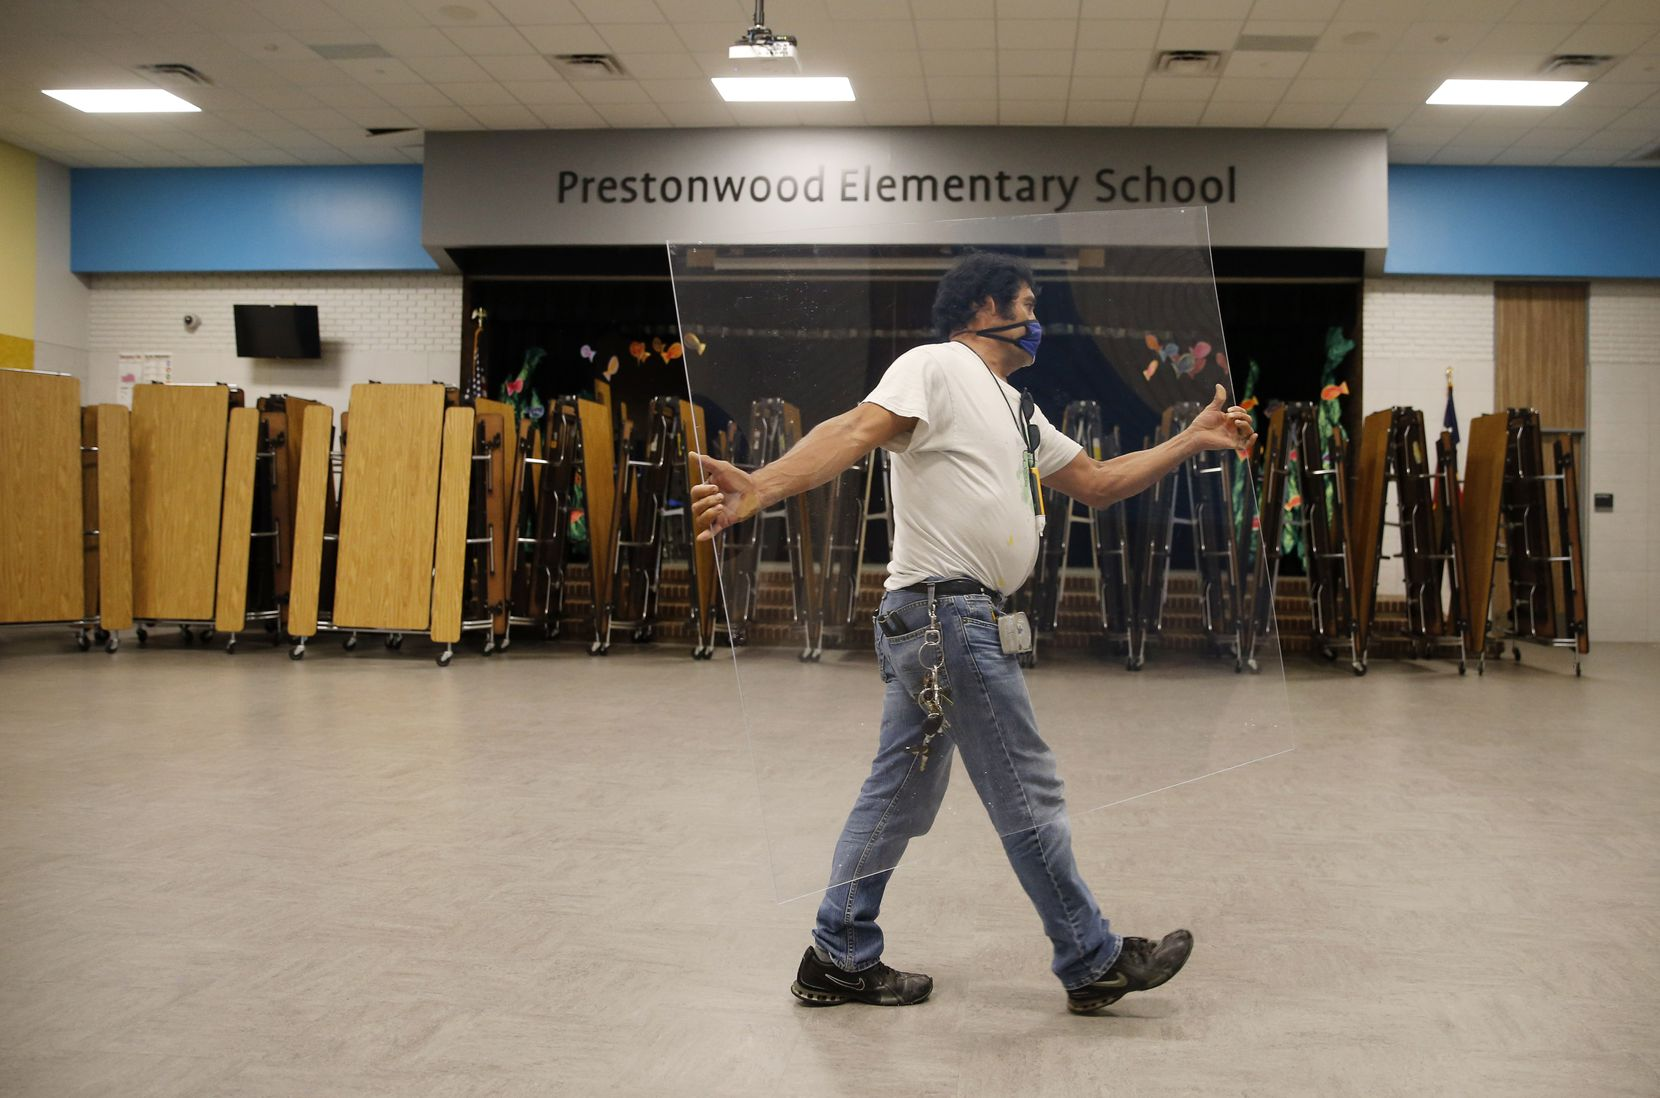 Daniel Limon, a Richardson ISD maintenance worker, carried a germ barrier to be installed in the cafeteria at Prestonwood Elementary in Dallas in July as schools prepared for students<EP>to return in a few weeks.